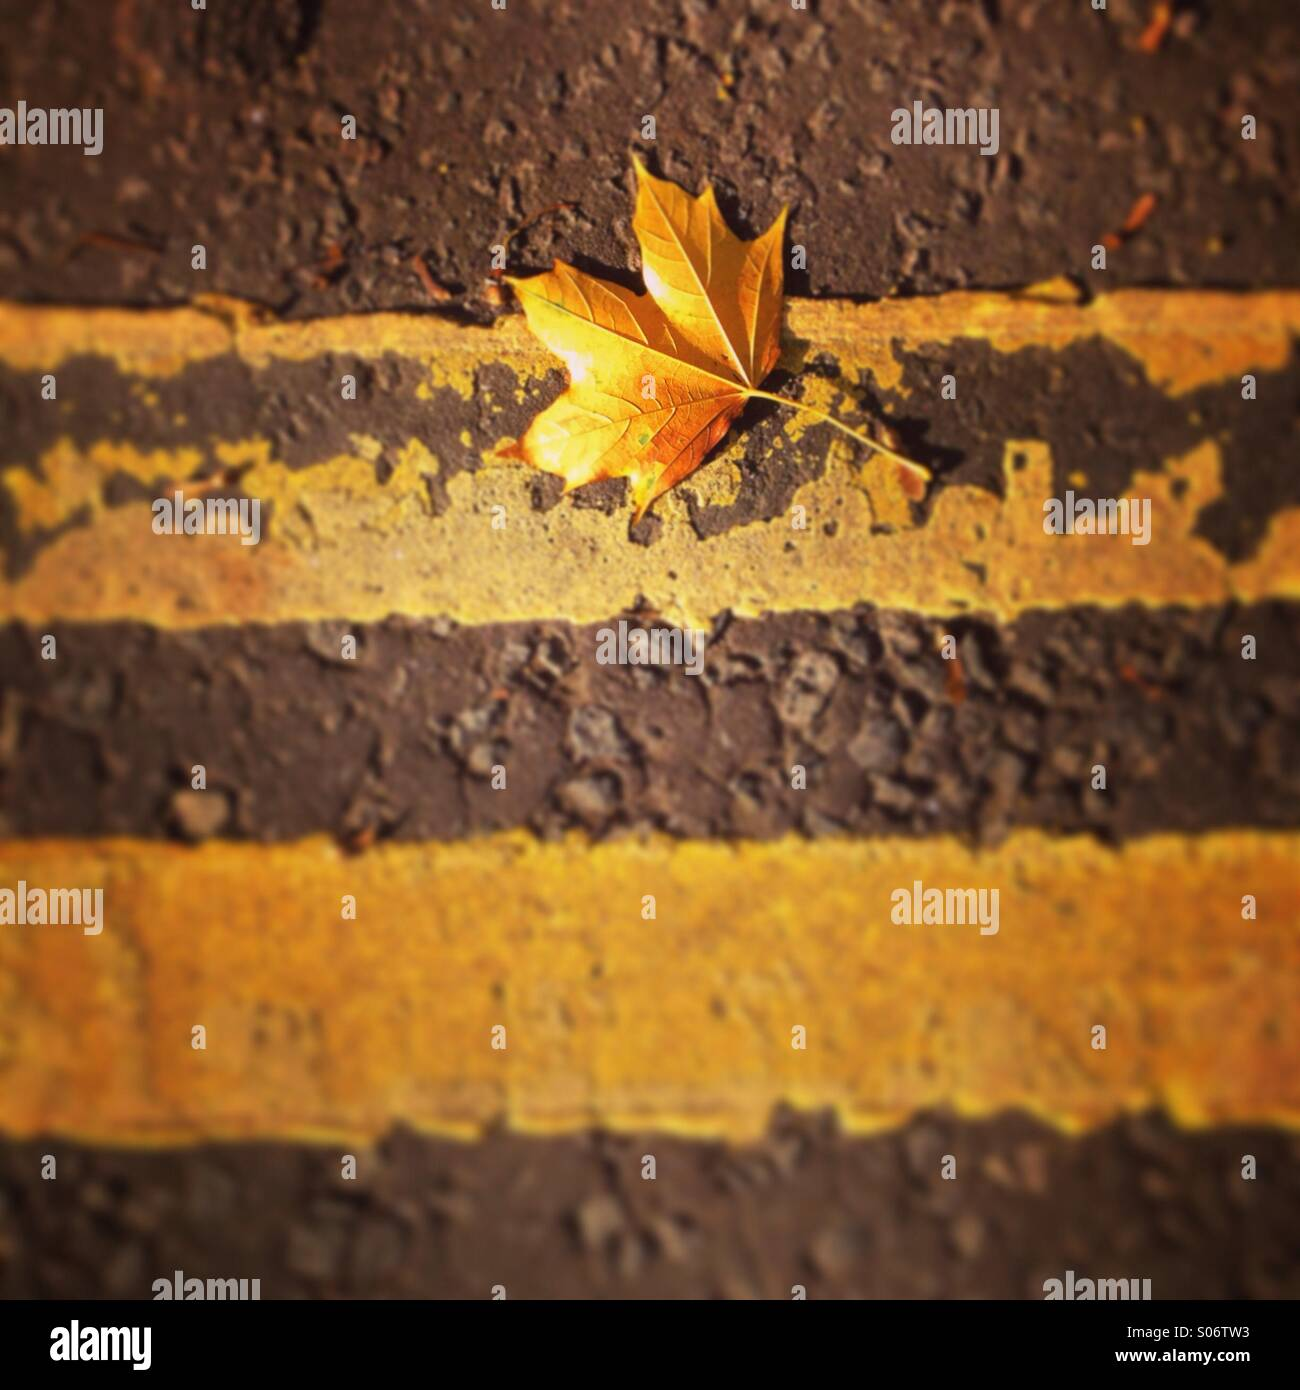 Fallen autumn leaf on double yellow lines. - Stock Image